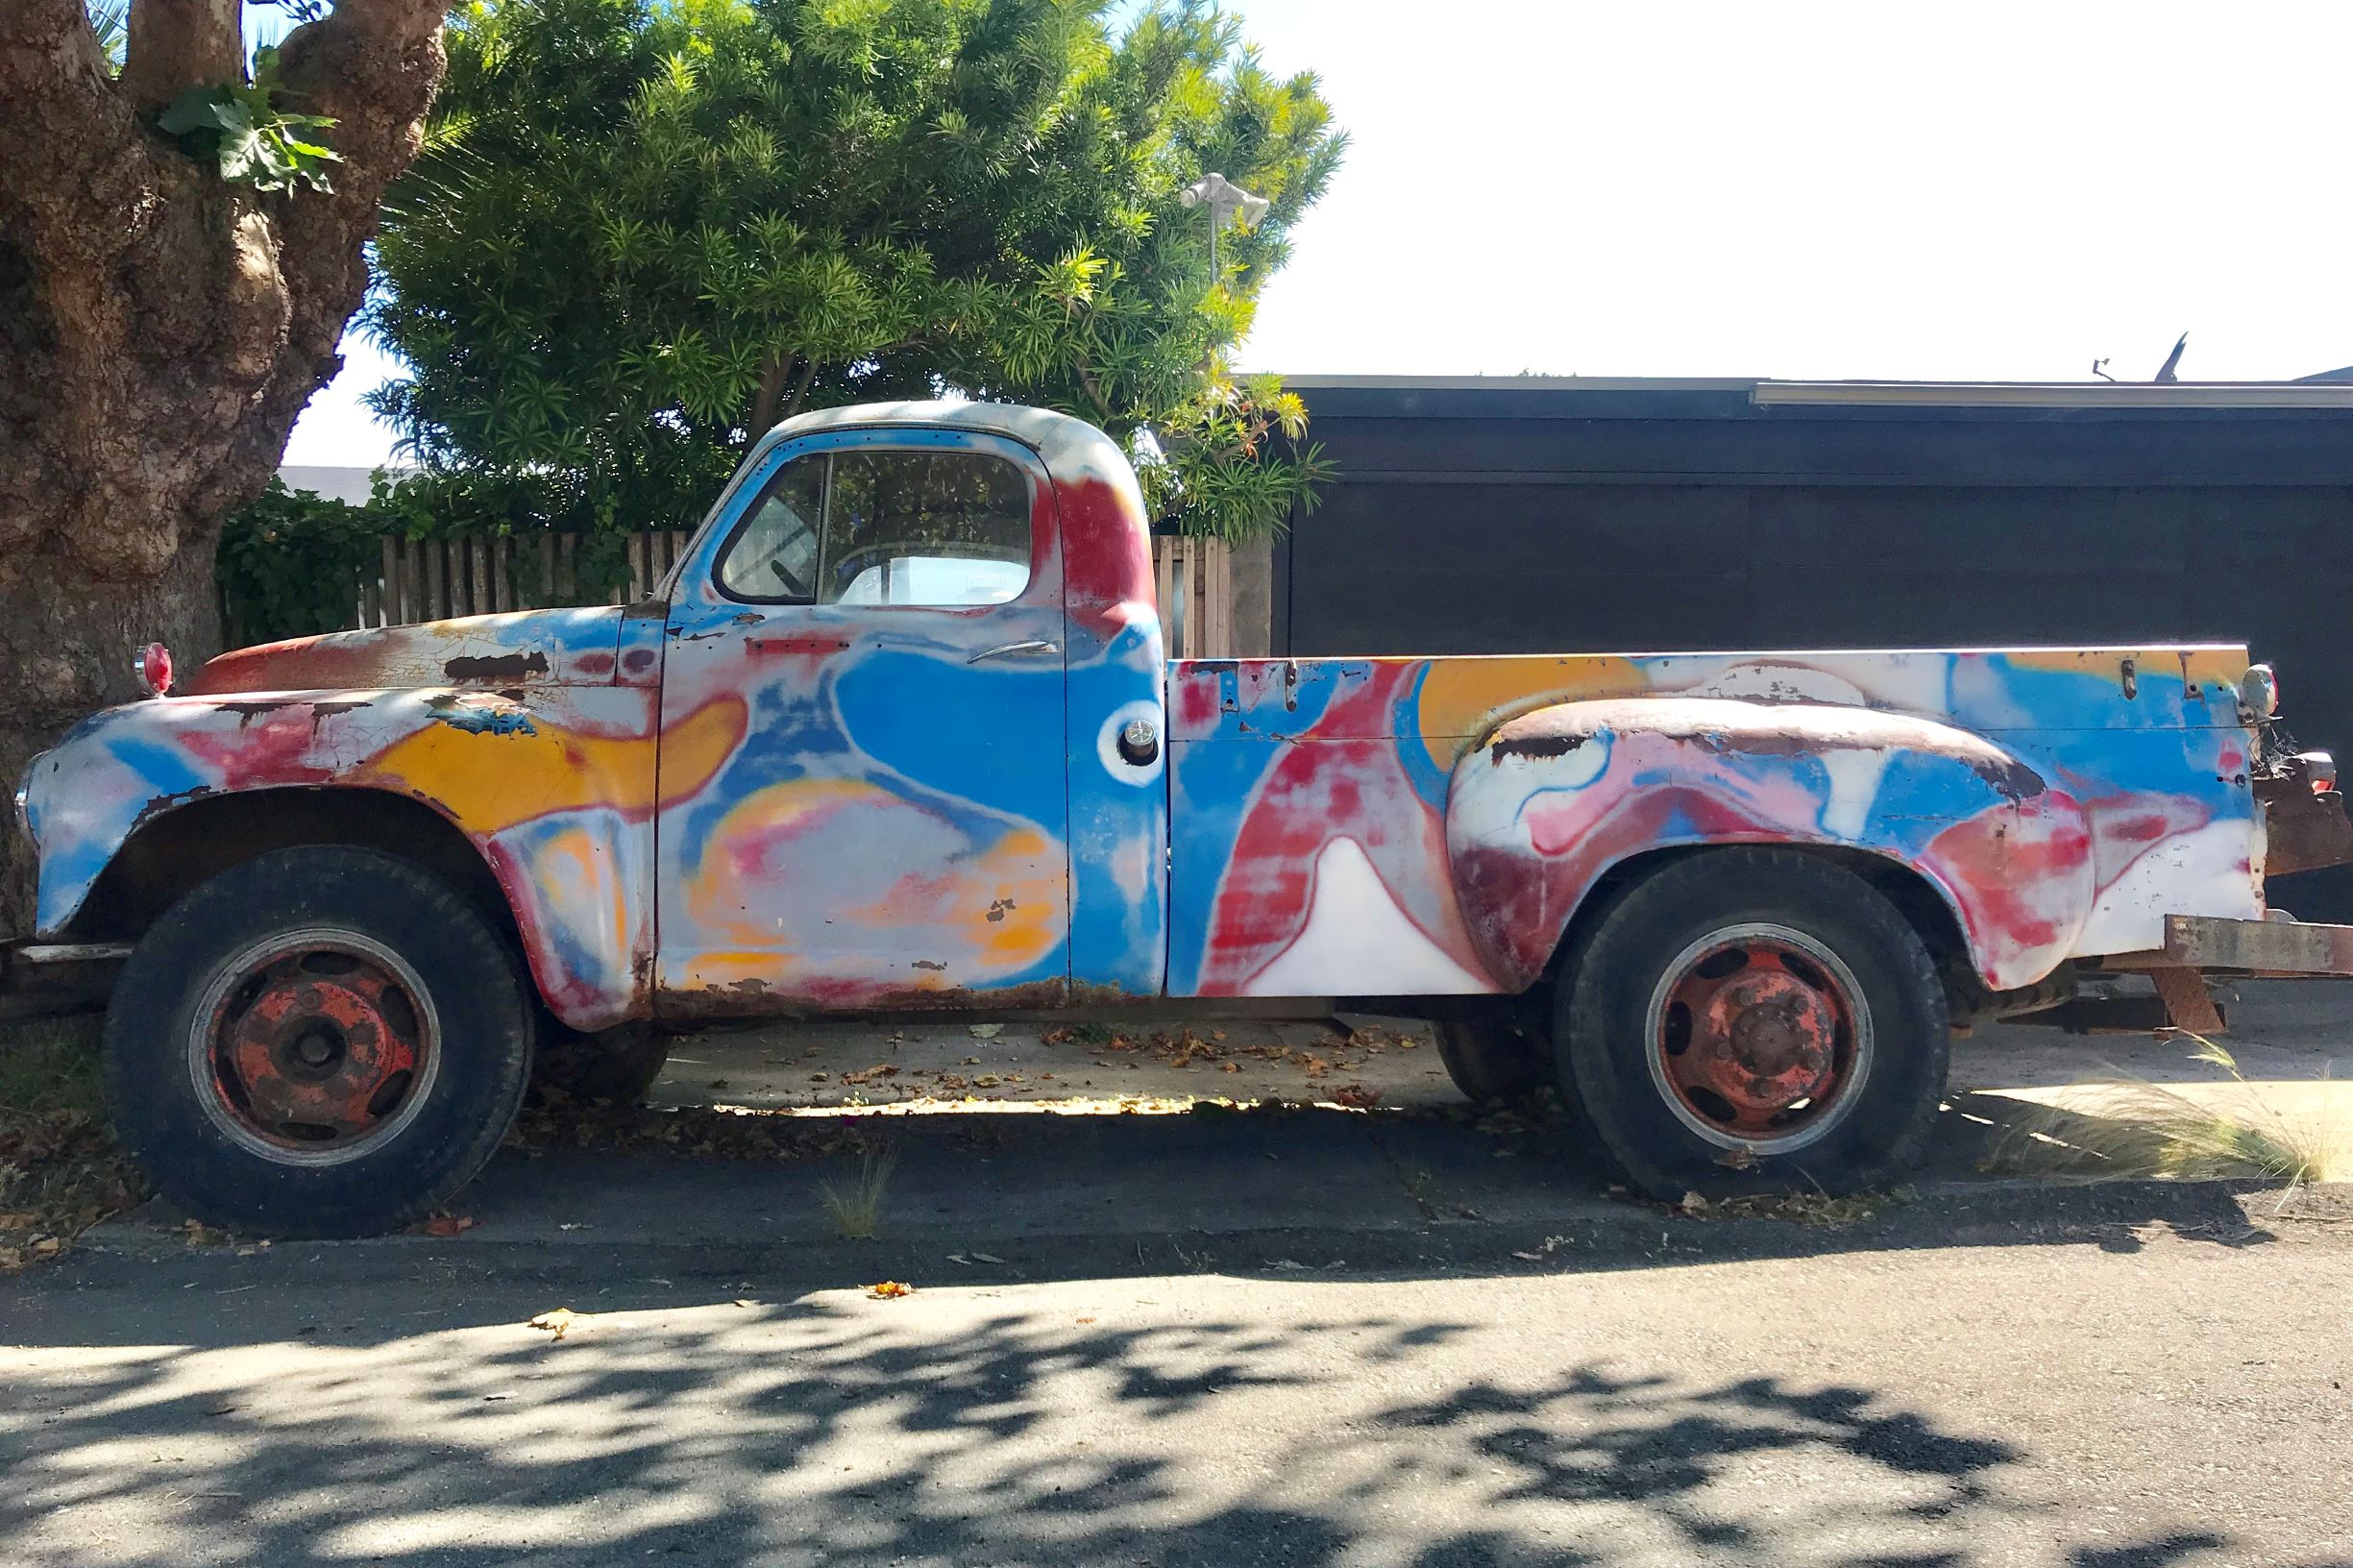 GRATEFUL DEAD'S 1949 STUDEBAKER M5 TRUCK 4mp